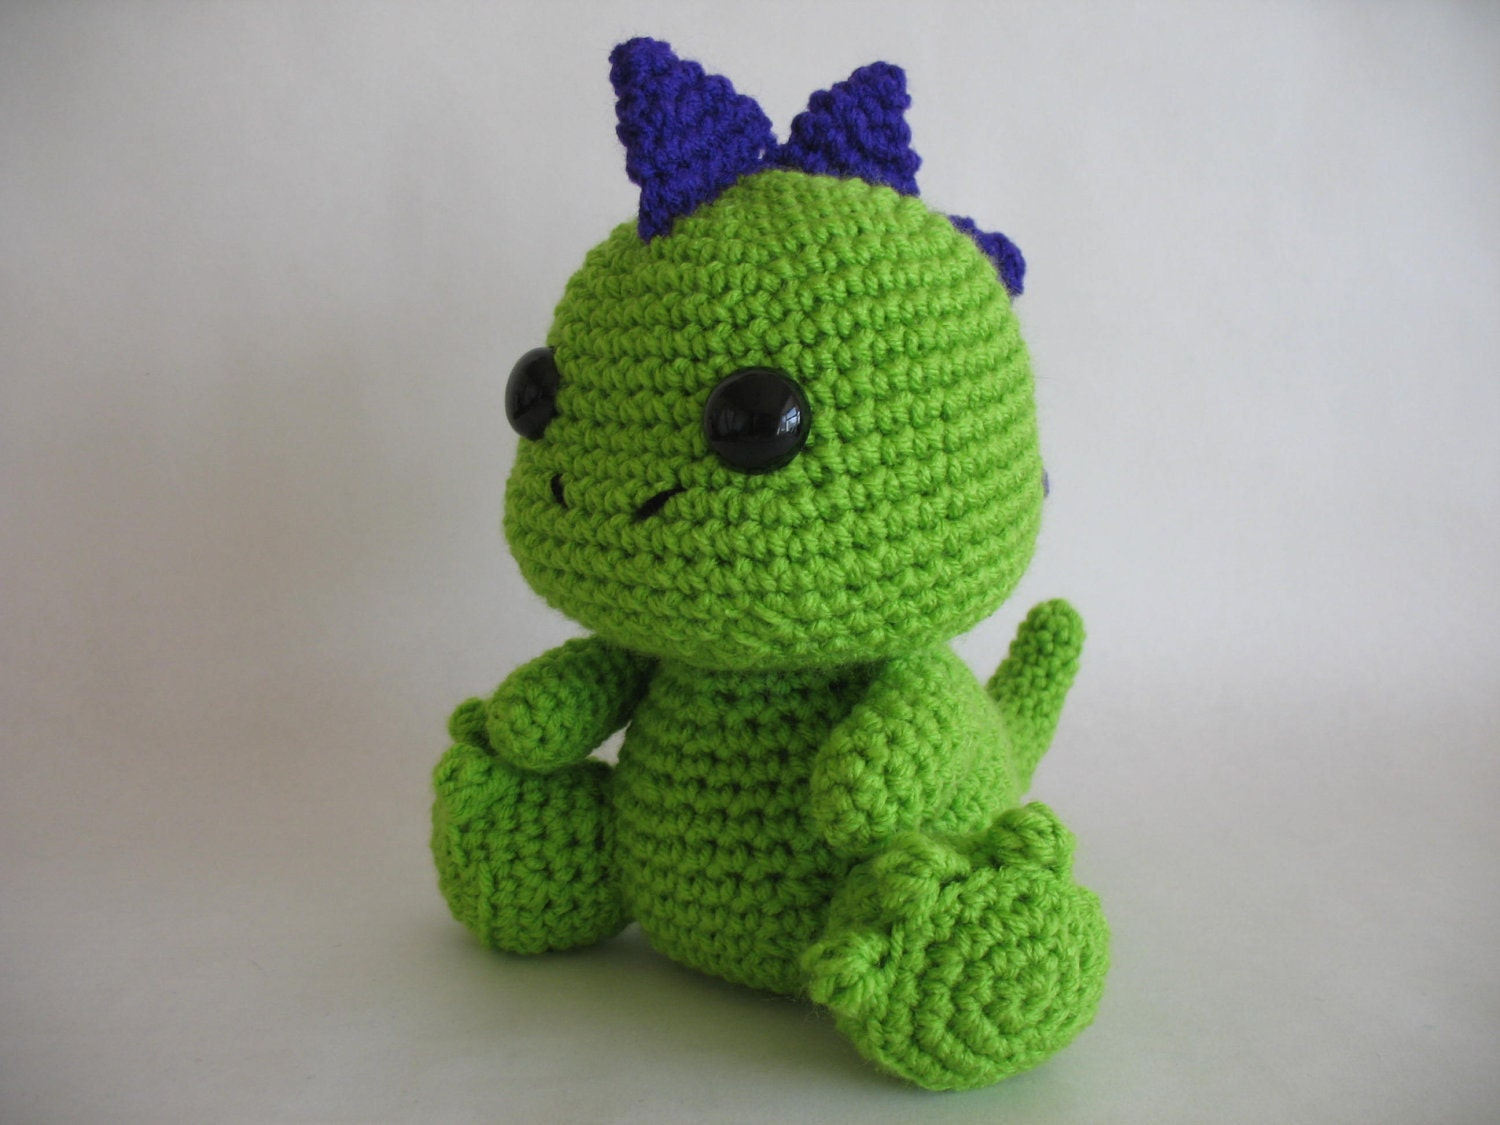 Mini Dinosaur Knitting Pattern : dinos on Pinterest Crochet Dinosaur, Dinosaurs and Crochet Dragon Pattern